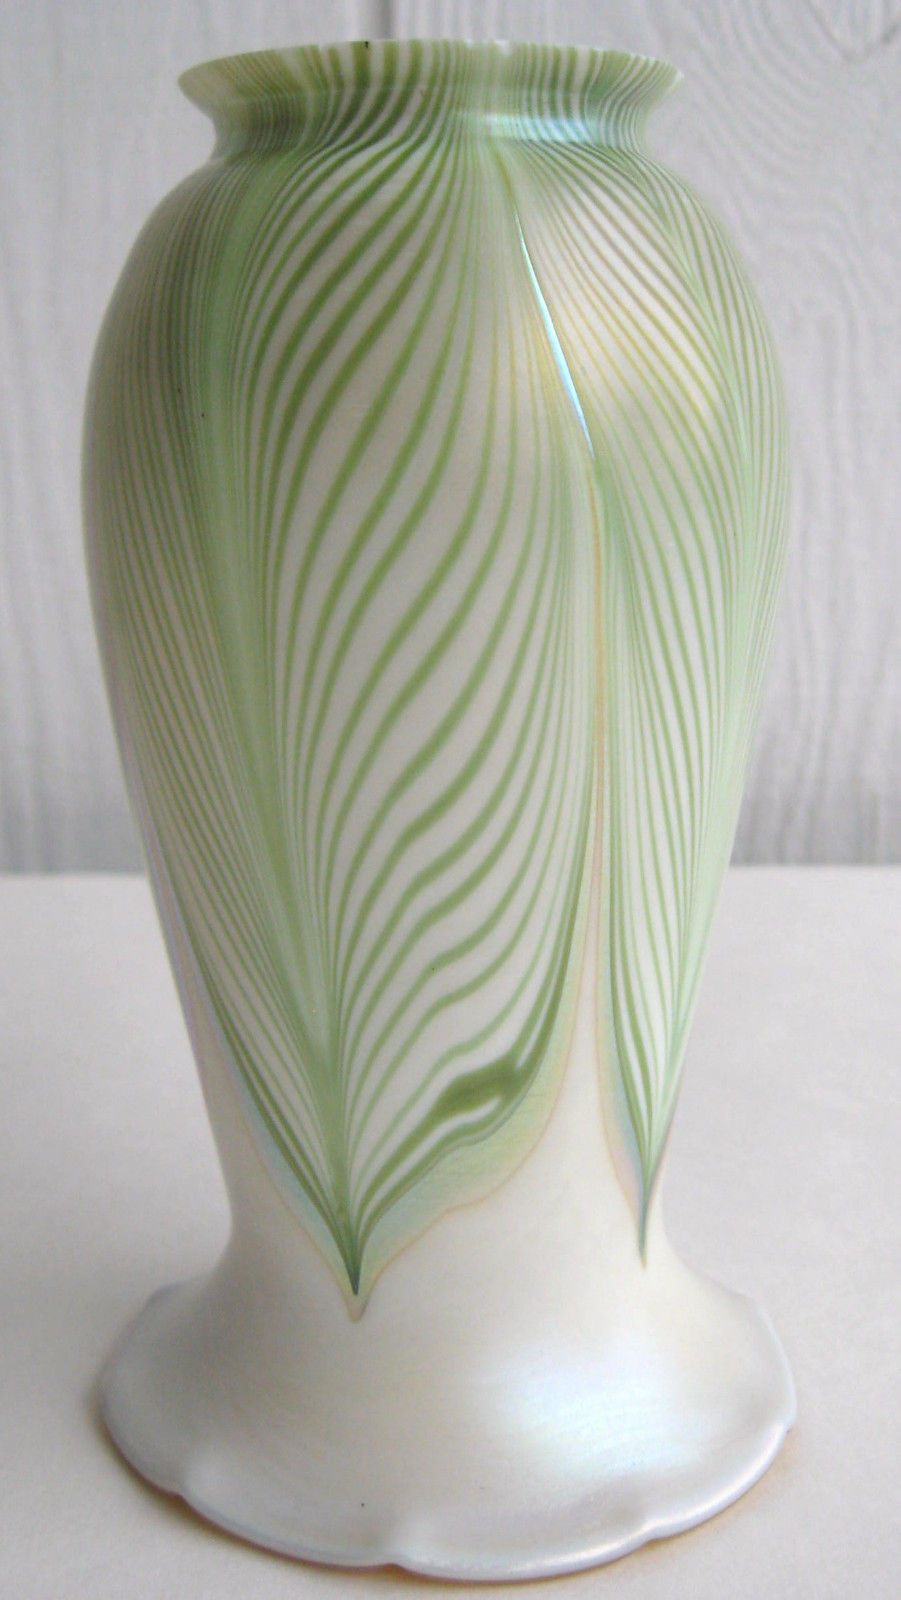 vintage FOSTORIA art glass lamp or light shade with an iridescent pullled feather pattern or design. The shade has a rich pearl or pearlized background with a green pulled feather the ends in an iridescent gold aurene or soft light marigold color that matches the interior of the shade.